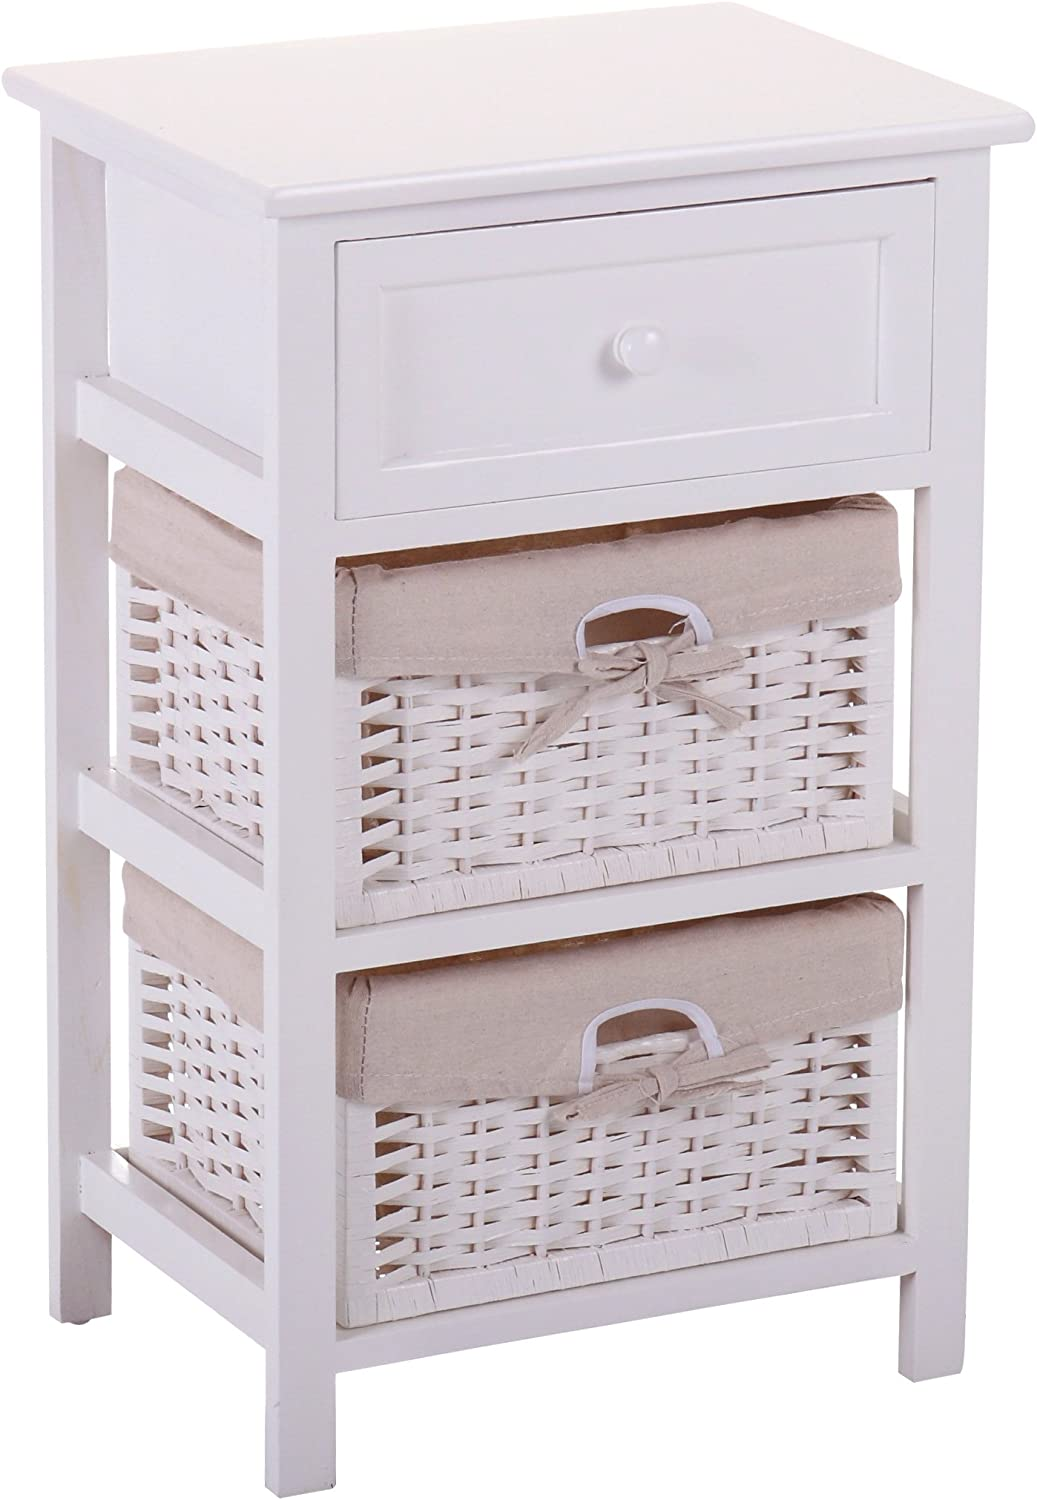 JAXSUNNY Mid-Century Wood Modern Nightstand with 1 Wooden Drawer and 2 Wicker Drawers, Bedside Table in White